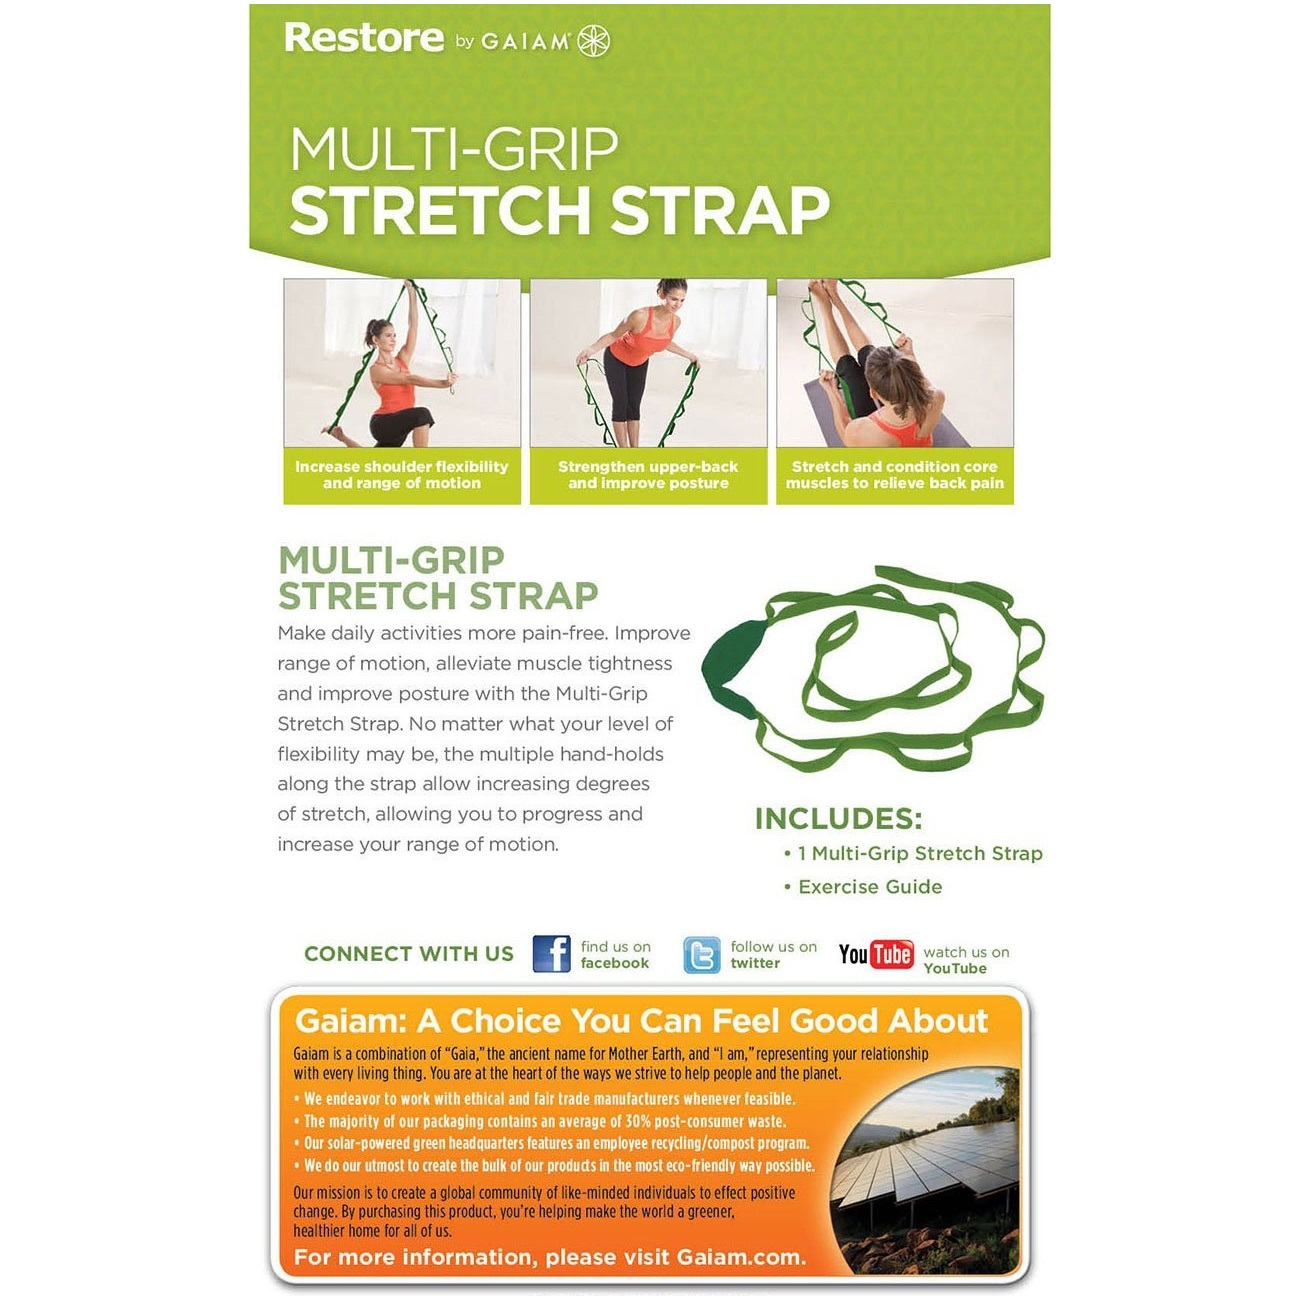 gaiam restore multi-grip stretch yoga strap